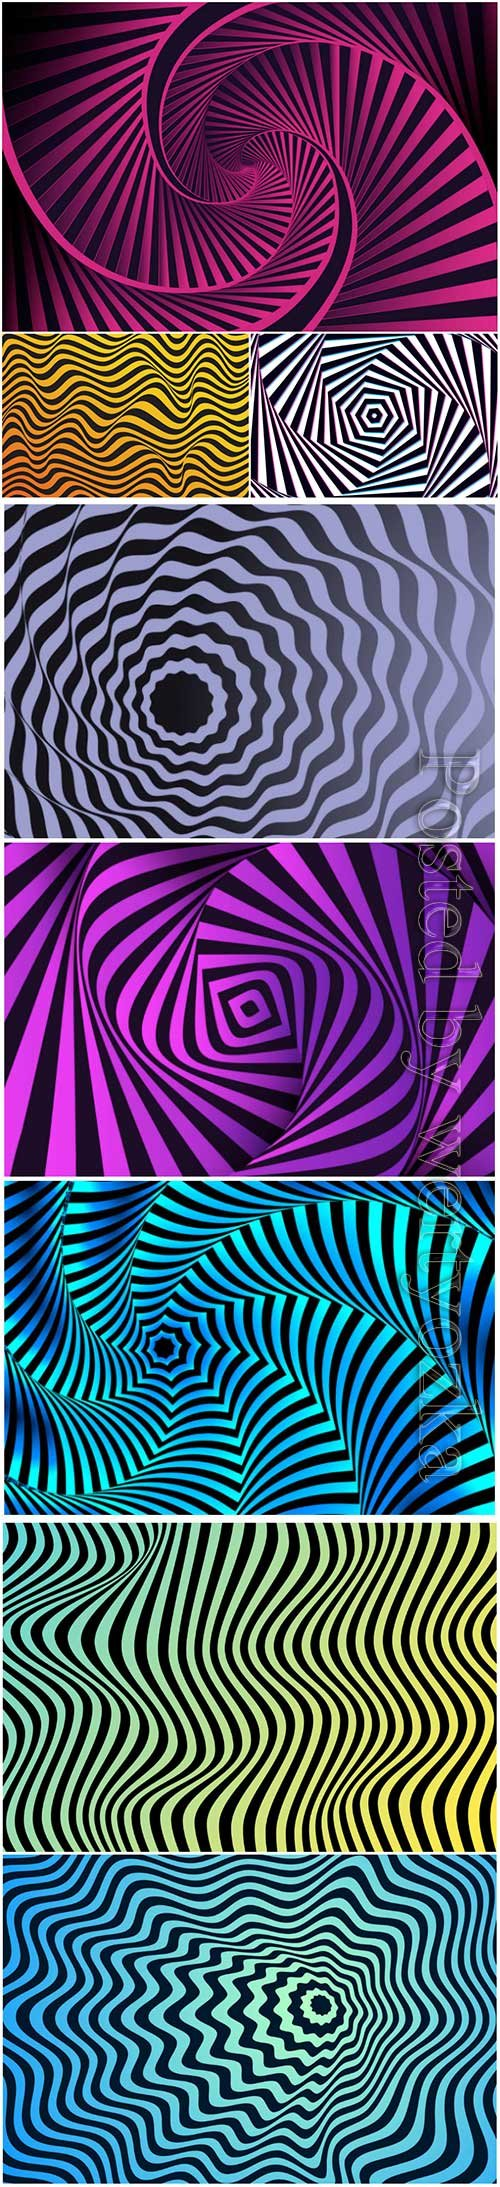 Psychedelic optical illusion vector background # 7